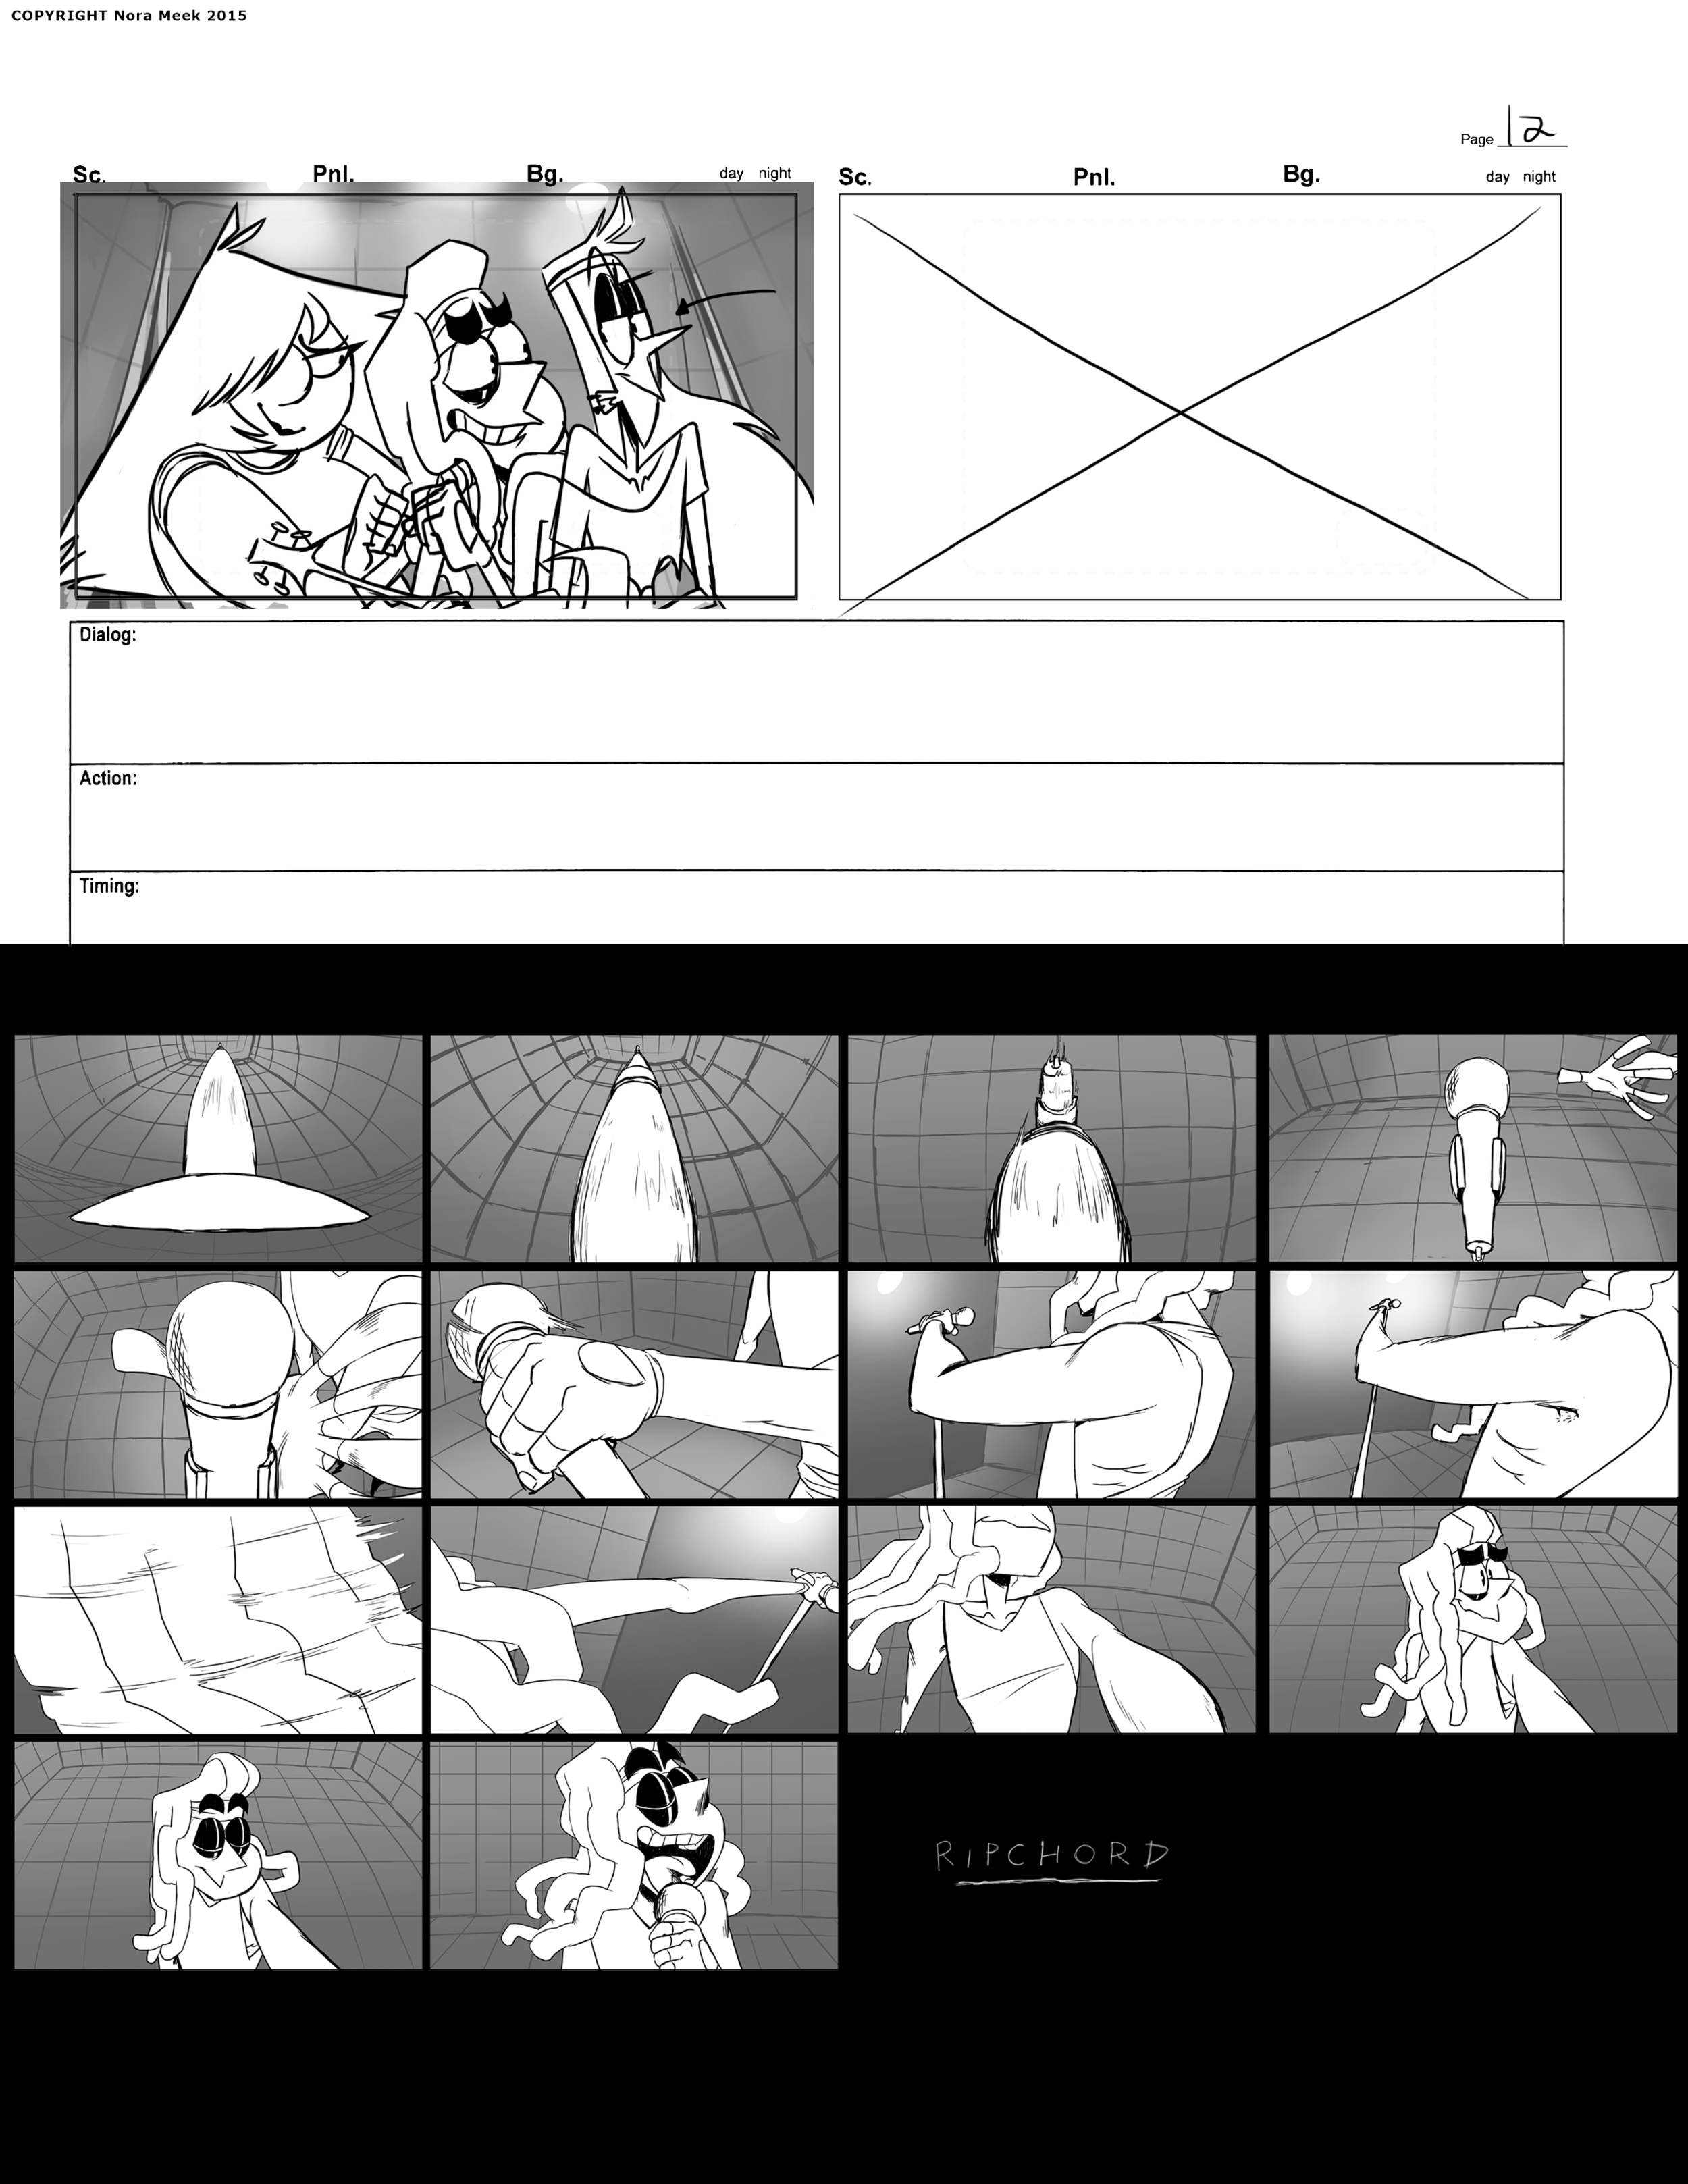 ripchord_boards_pages12.png